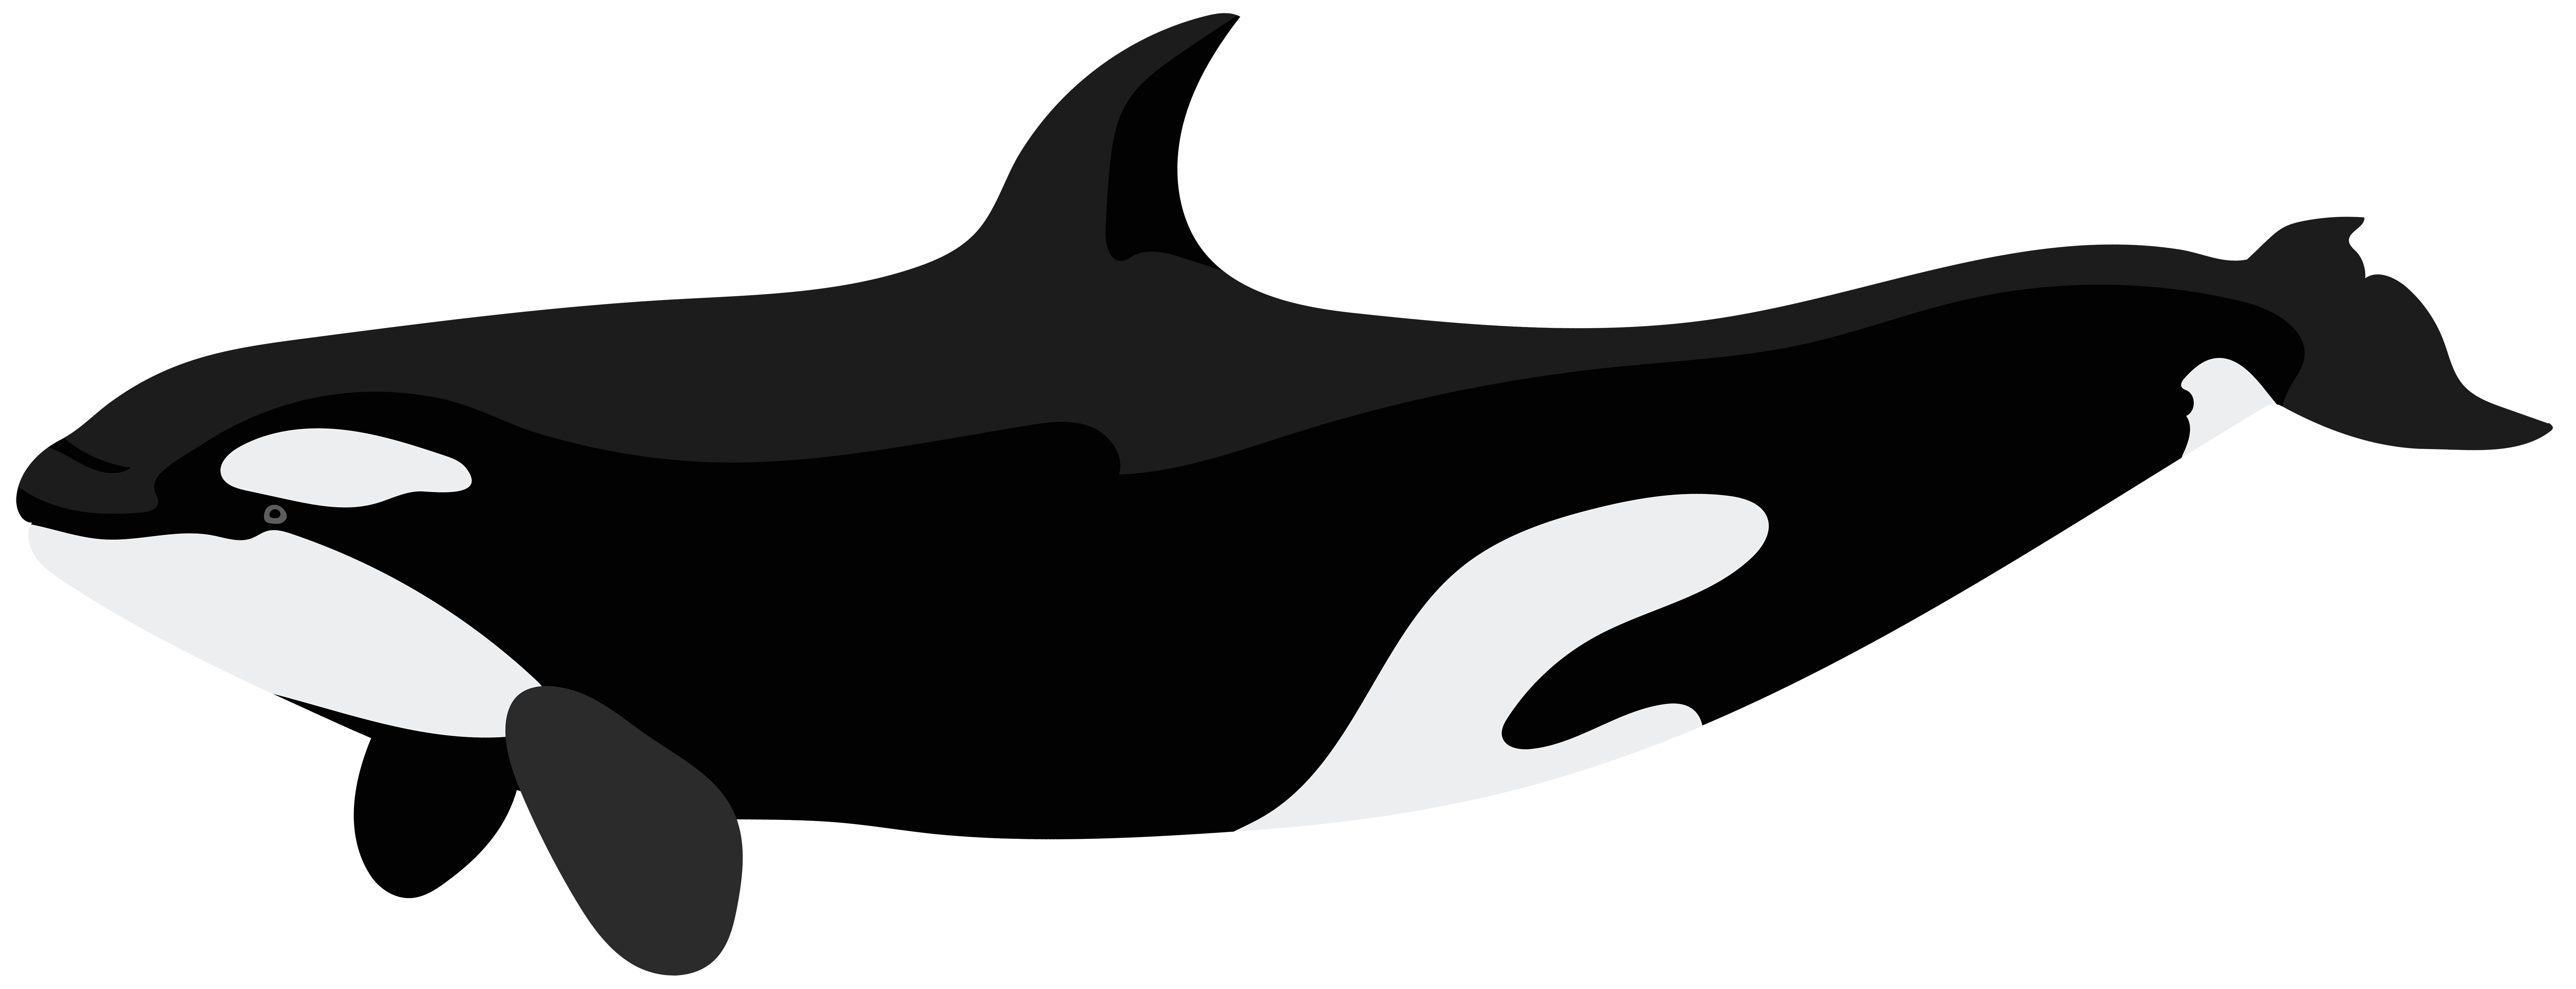 png black and white Orca clipart. Png clip art image.